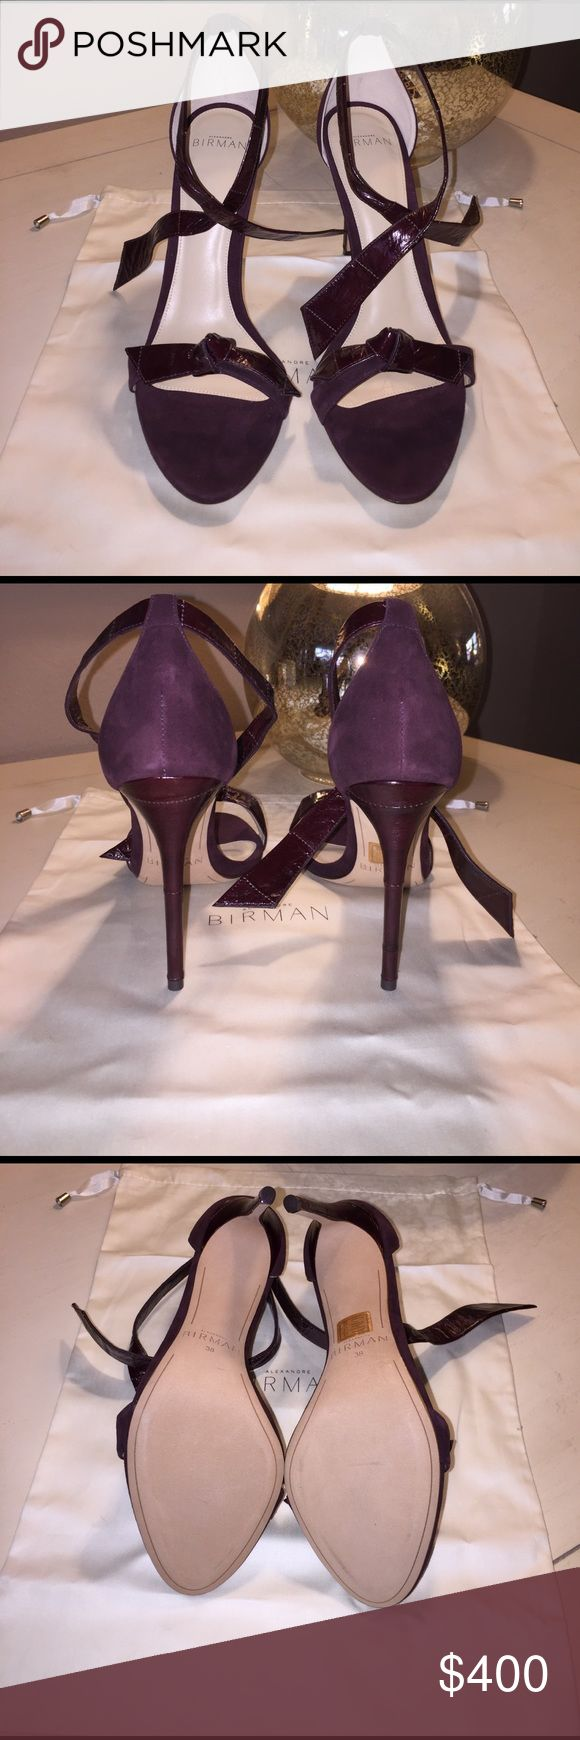 Alexandre Birman Clarita shoes size 38 Alexandre Birman size 38 Clarita suede ankle tie sandals. Never worn, 4 in heel (100mm) a tad too small for me. If you are an American size 7 or 7 1/2 they should fit you perfectly. looking for a new home :( Alexandre Birman Shoes Heels